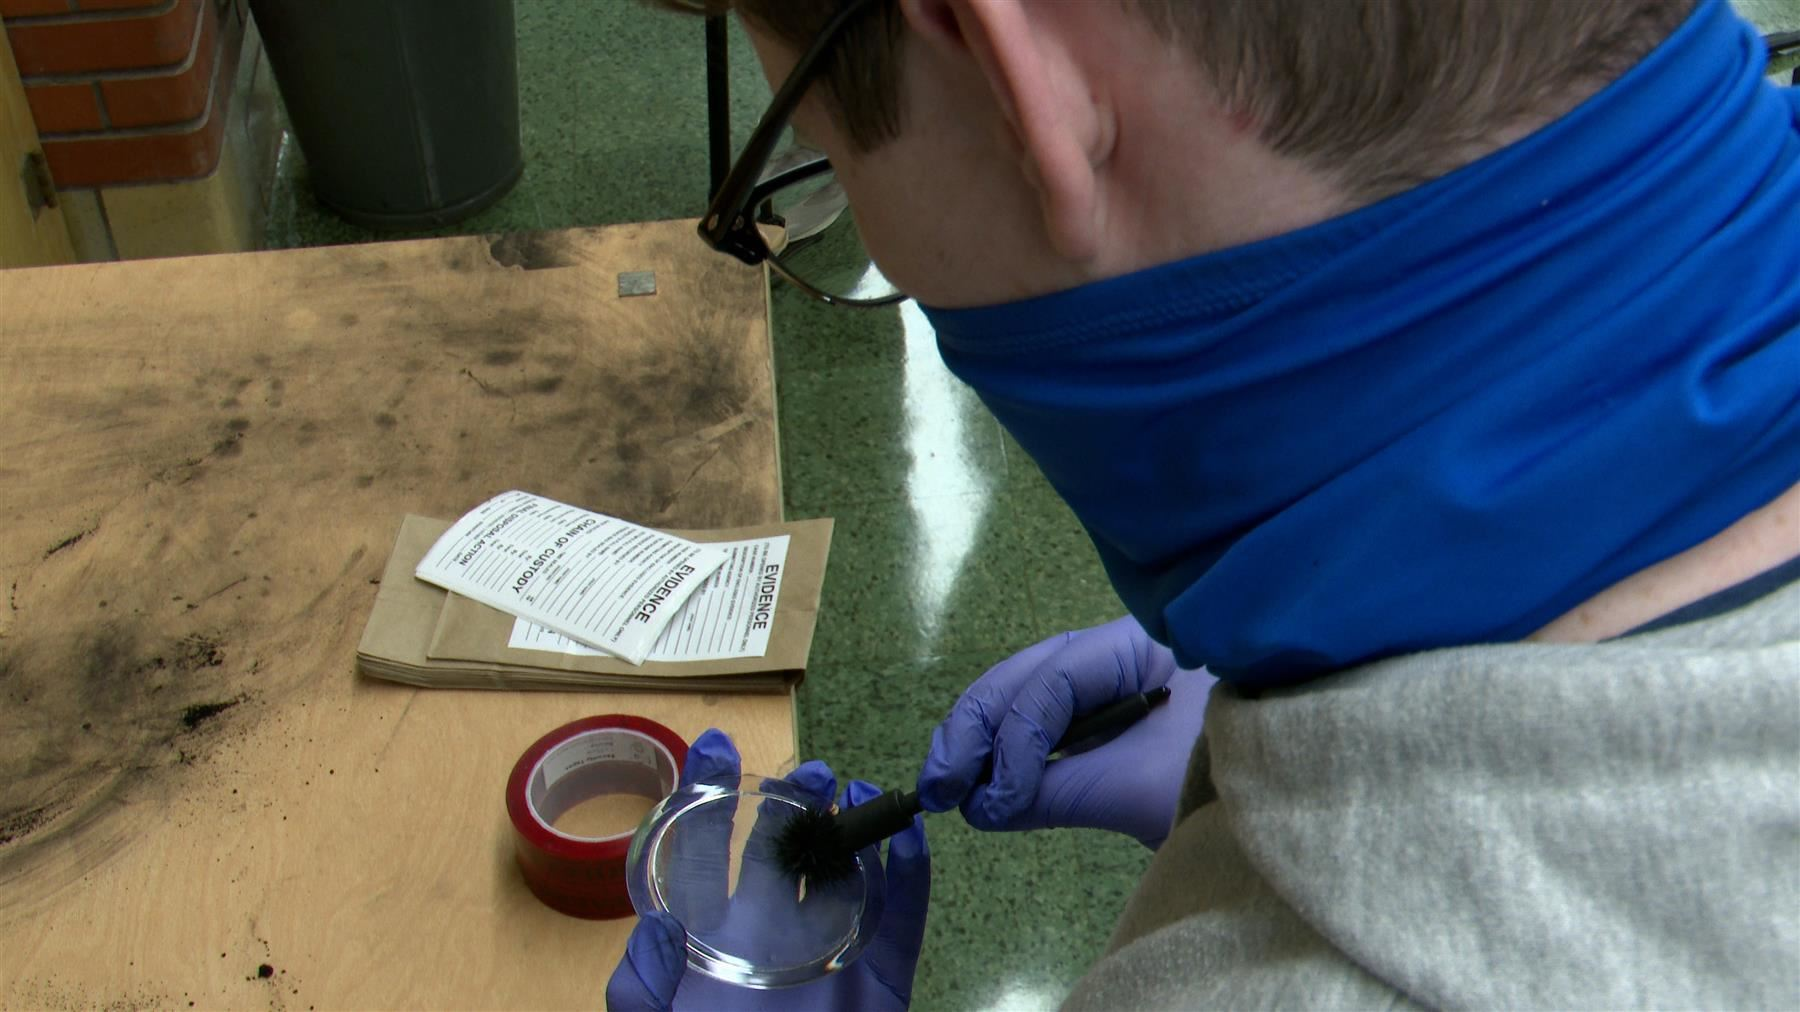 A south student uses tools to discover fingerprints as part of the Criminology course at his school